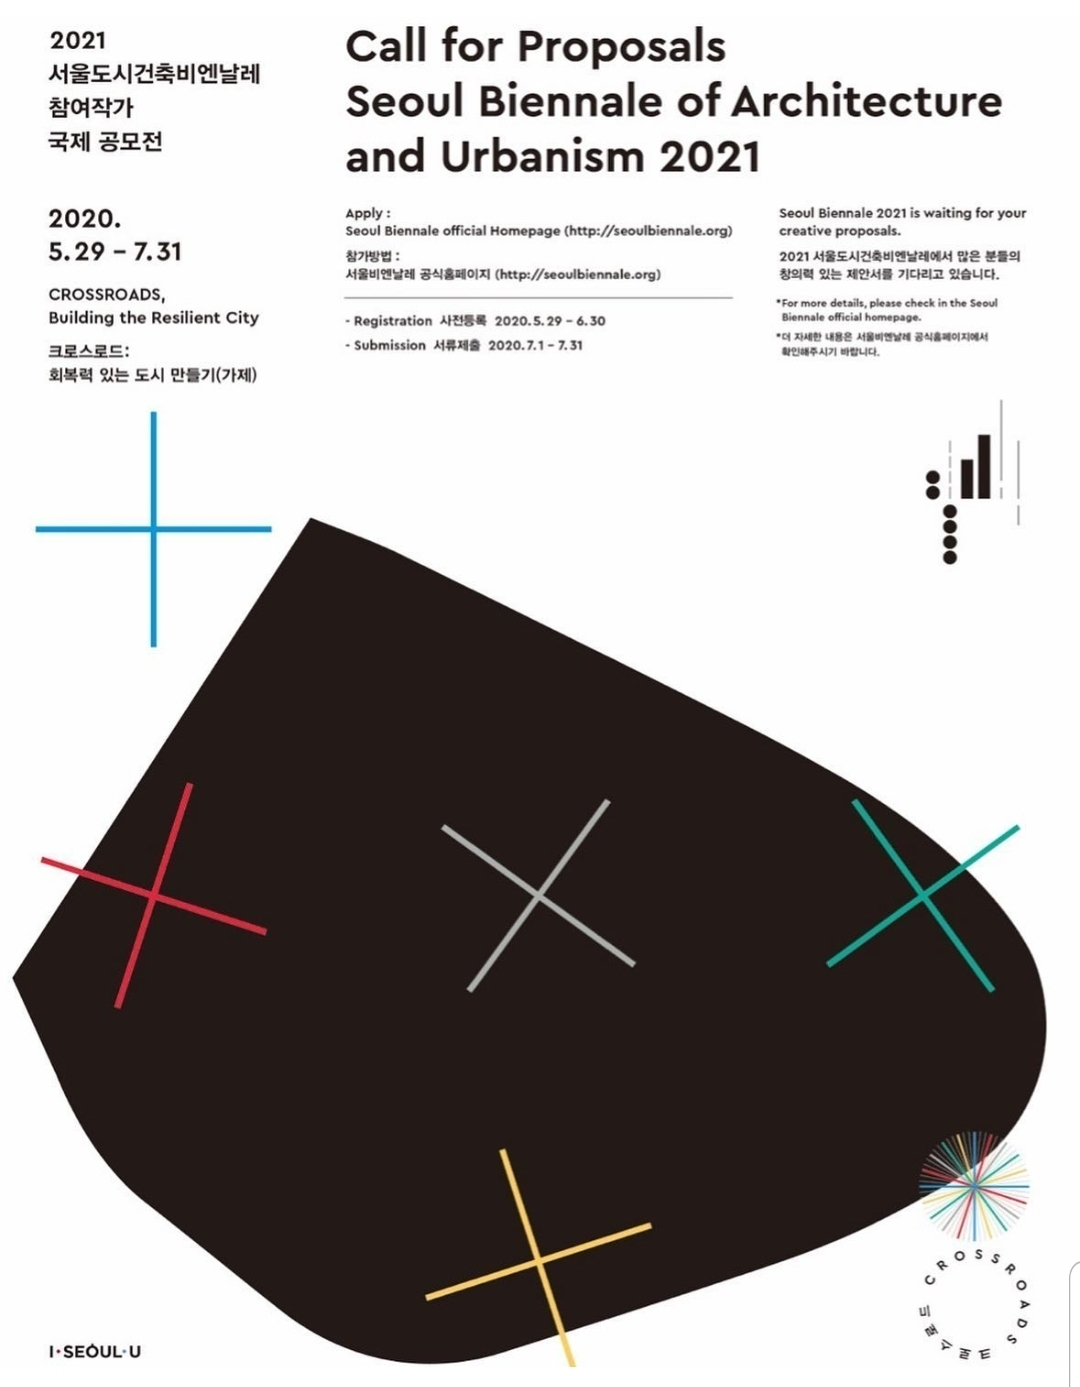 A poster of the international application for the 2021 Seoul Biennale of Architecture and Urbanism (SBAU)